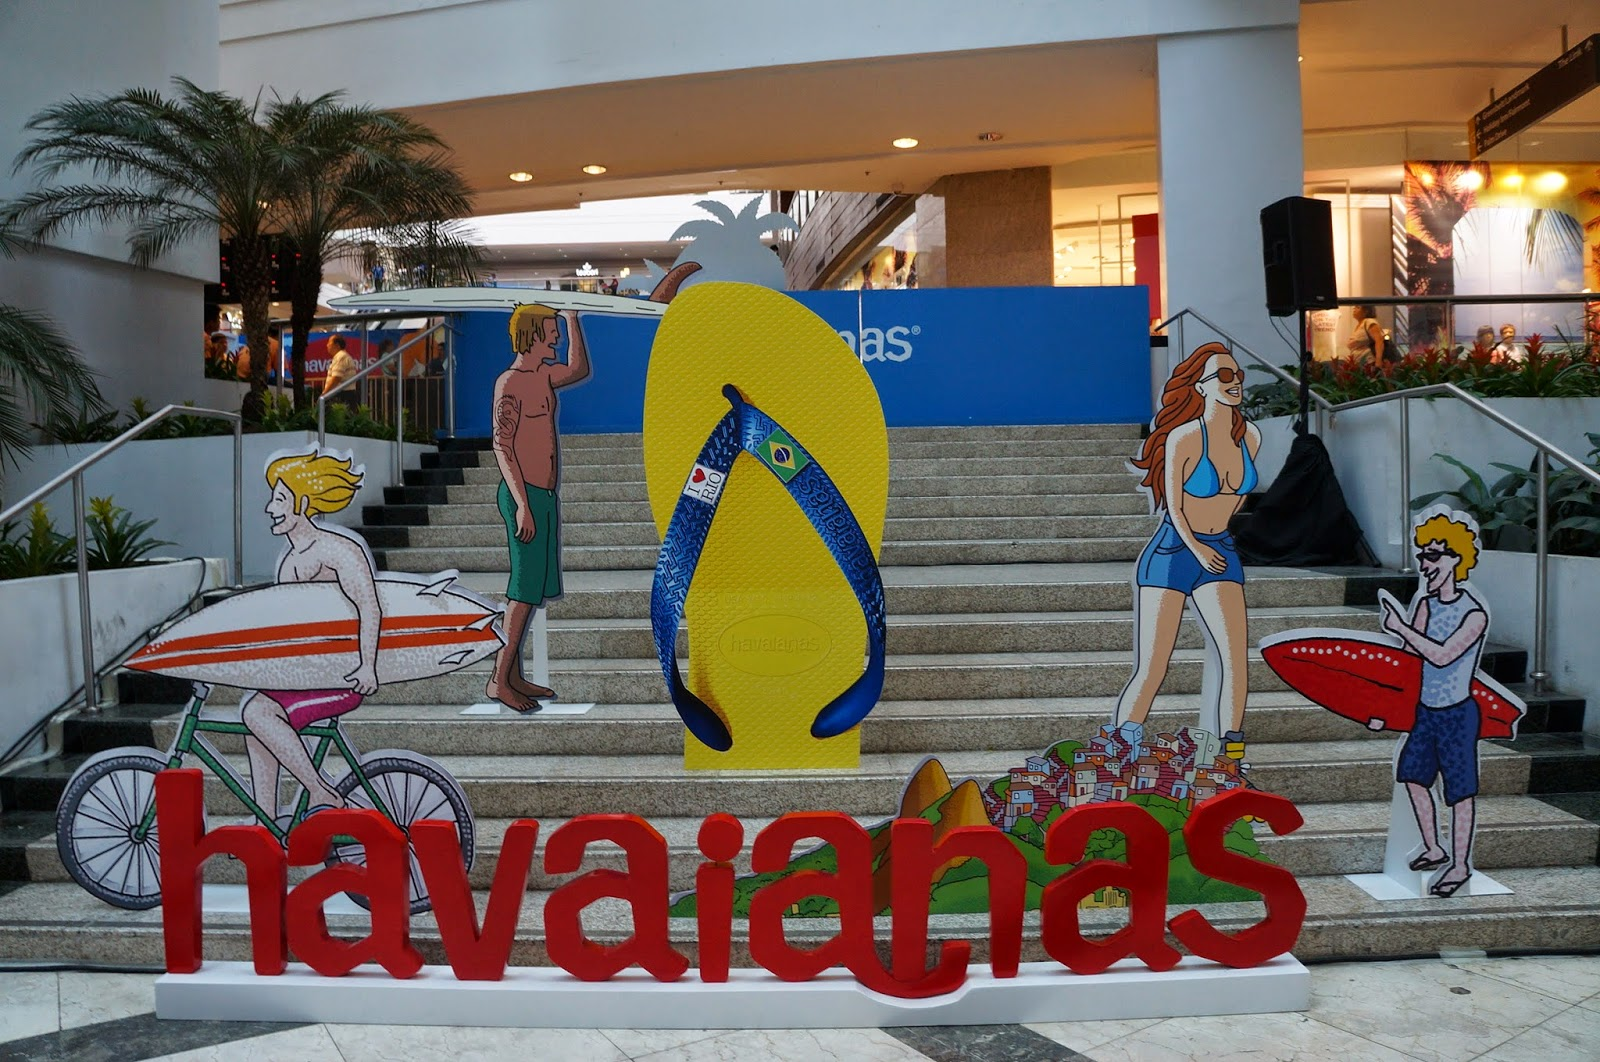 73a3a44795b7 Make Your Own Havaianas 2014  The Biggest Flip-Flops Customization Event in  the Country